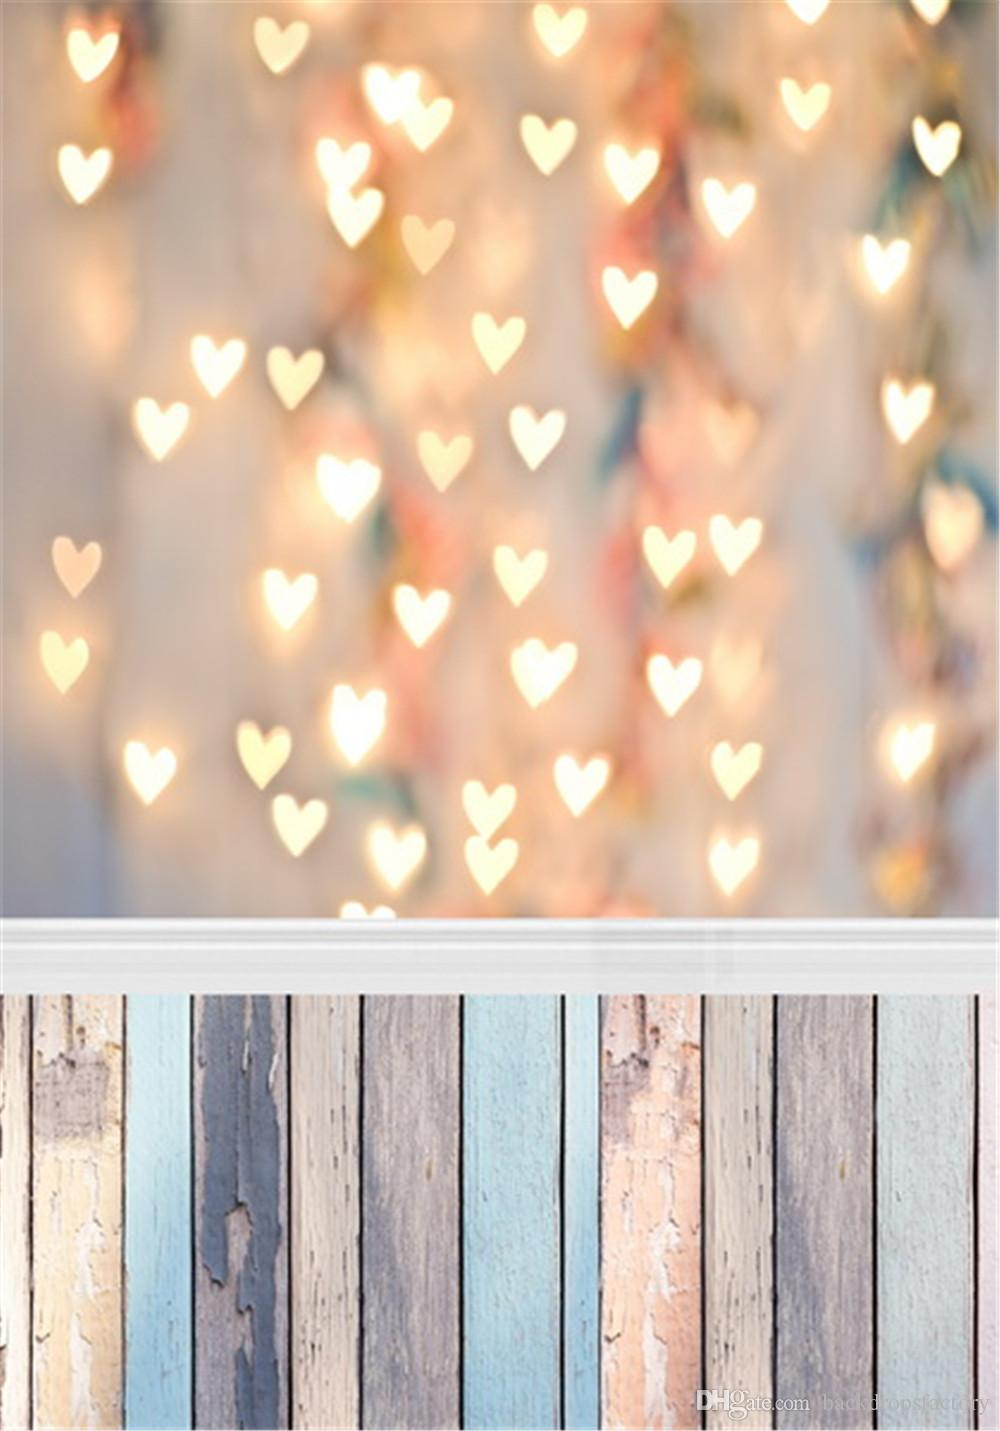 Glitter Love Heart Lights Photography Backdrop Vinyl Wood Planks Texture Floor Photo Background Bokeh Baby Newborn Booth Wallpaper Props